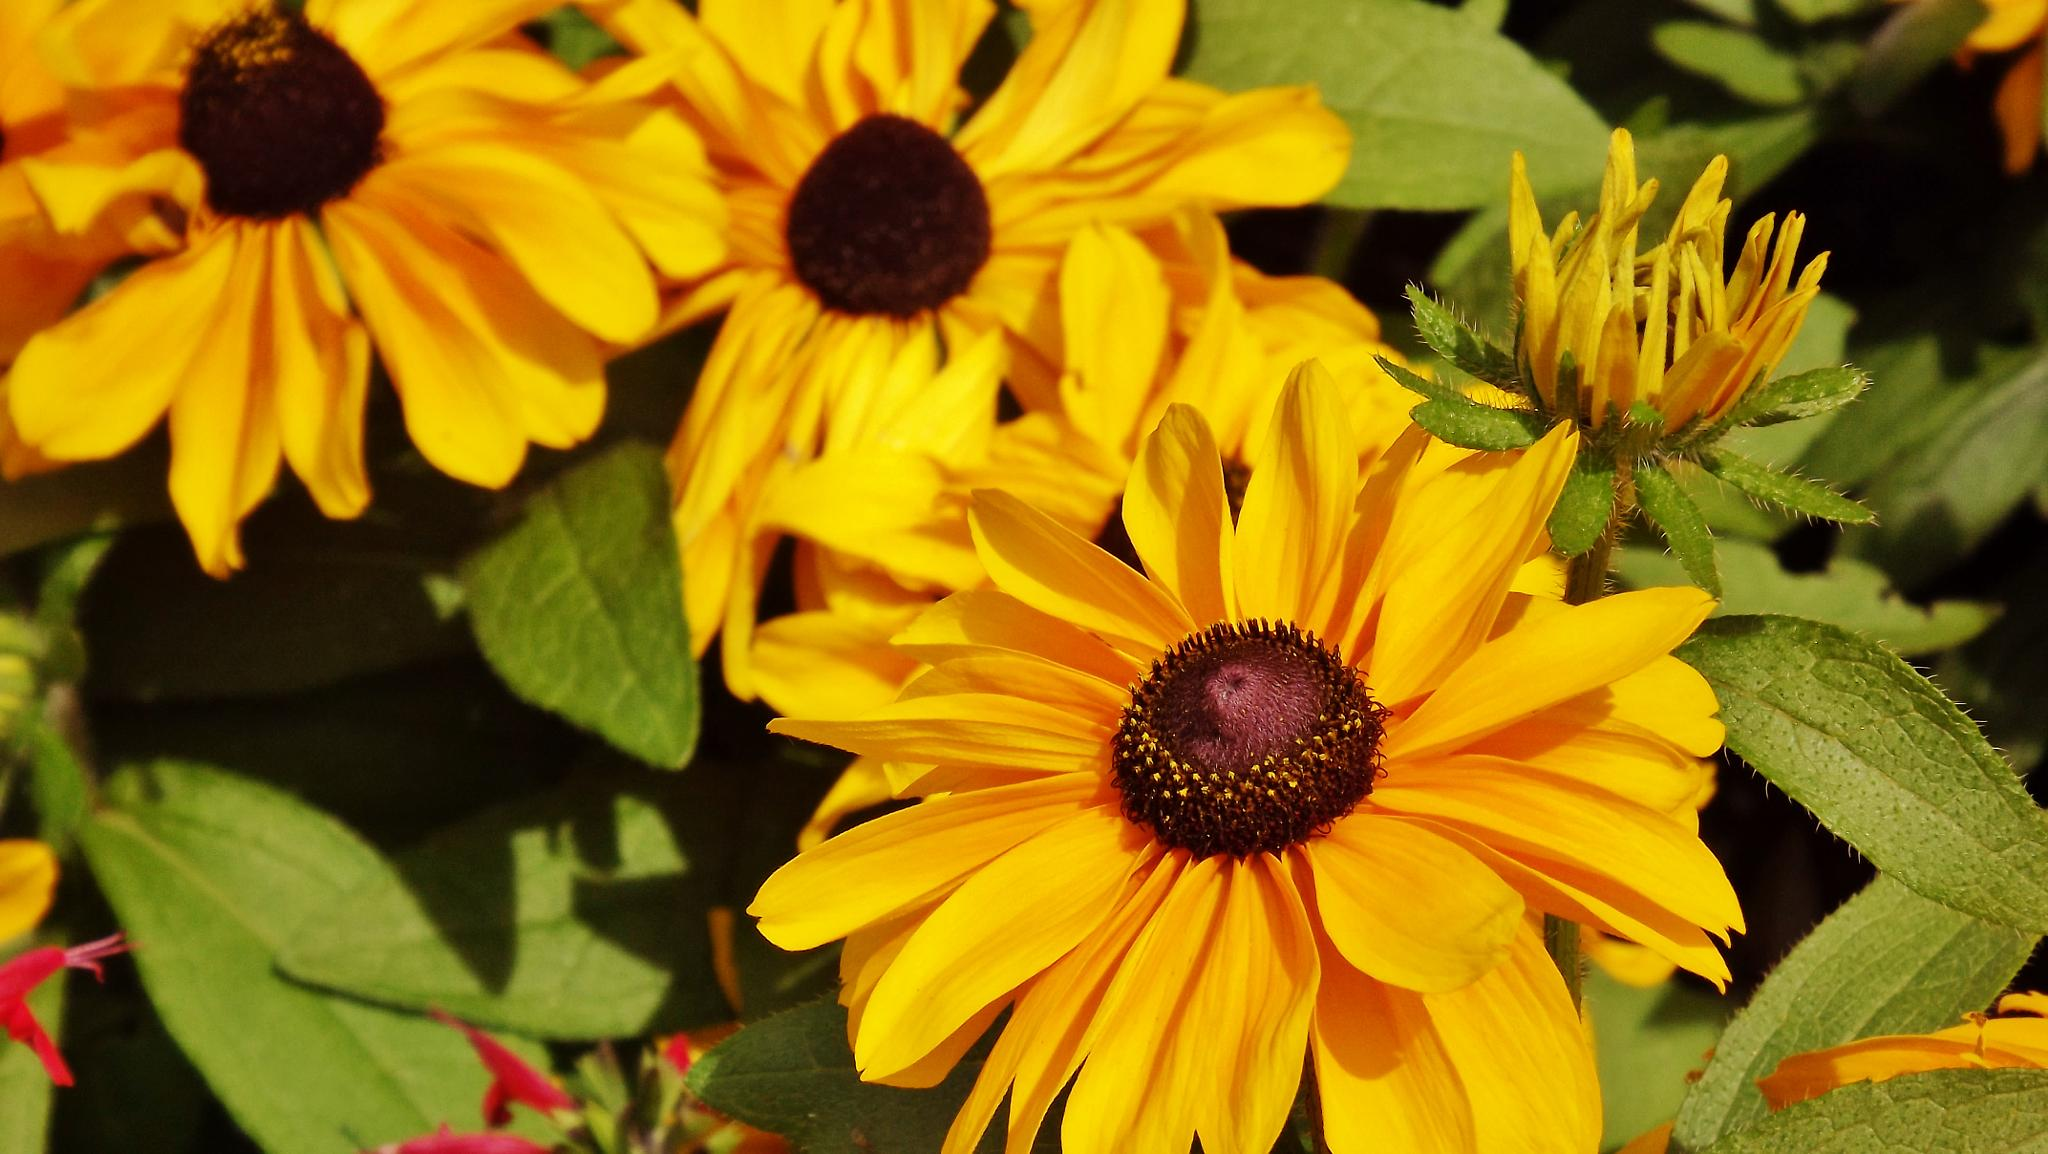 Yellows flowers by real.michaud.5036